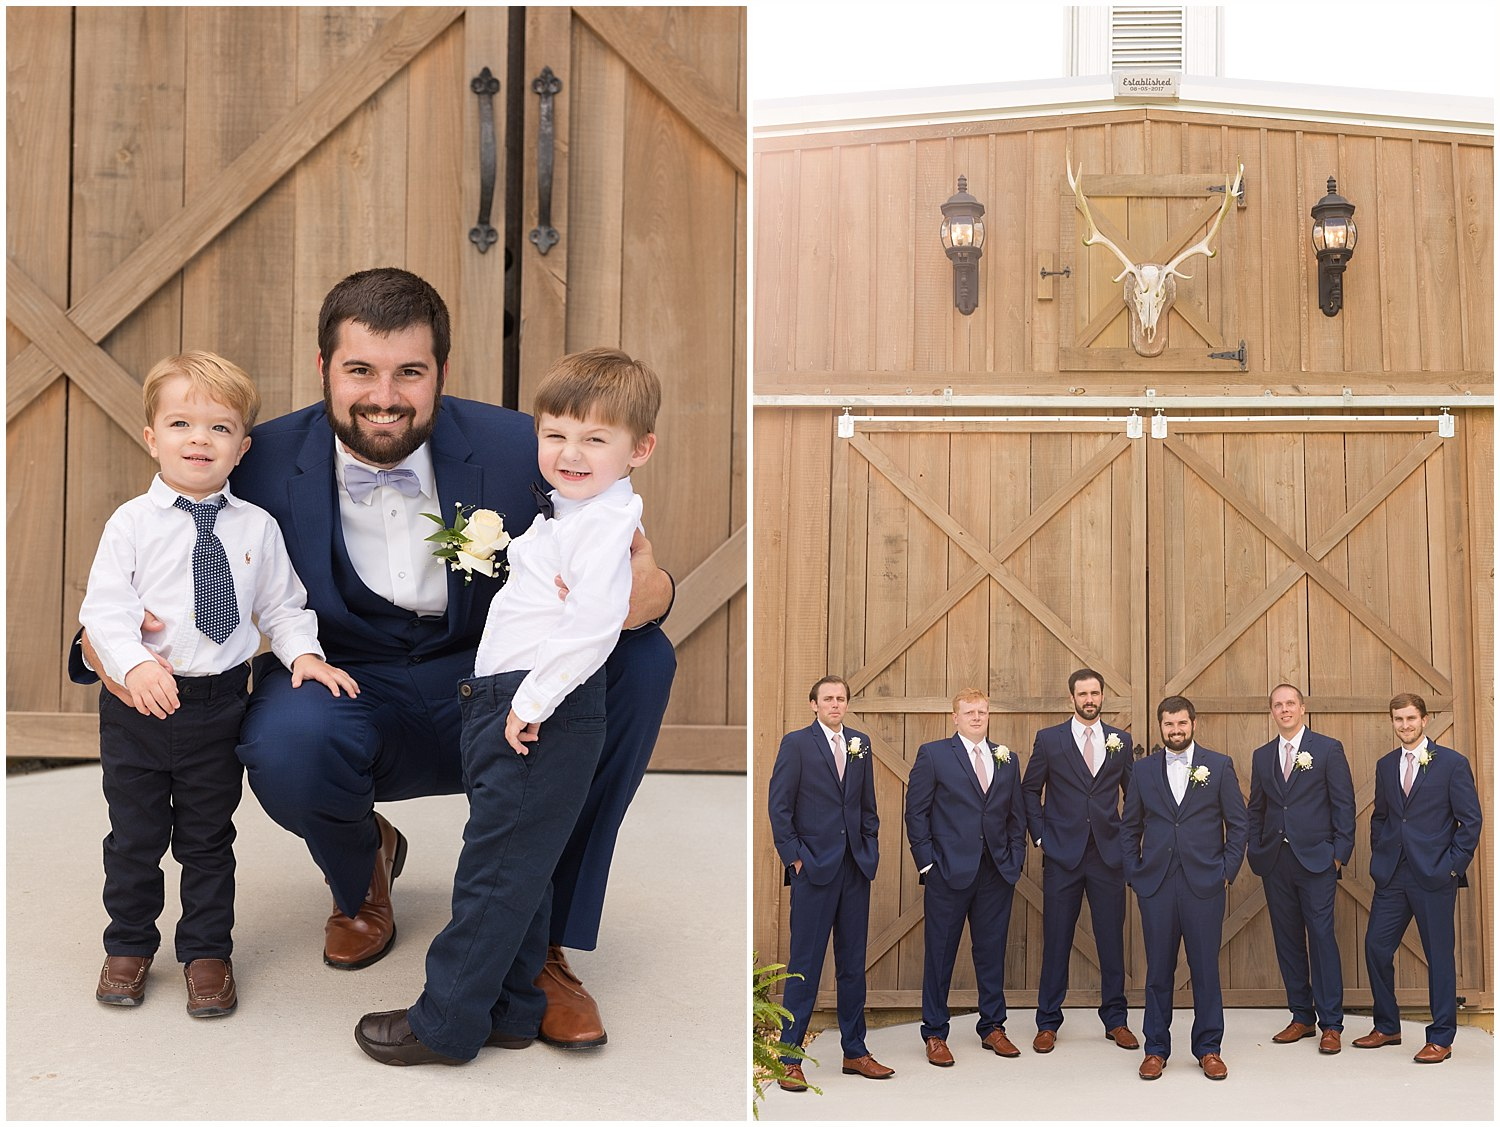 groom, groomsmen, and ring-bearers at barn wedding in South Mississippi